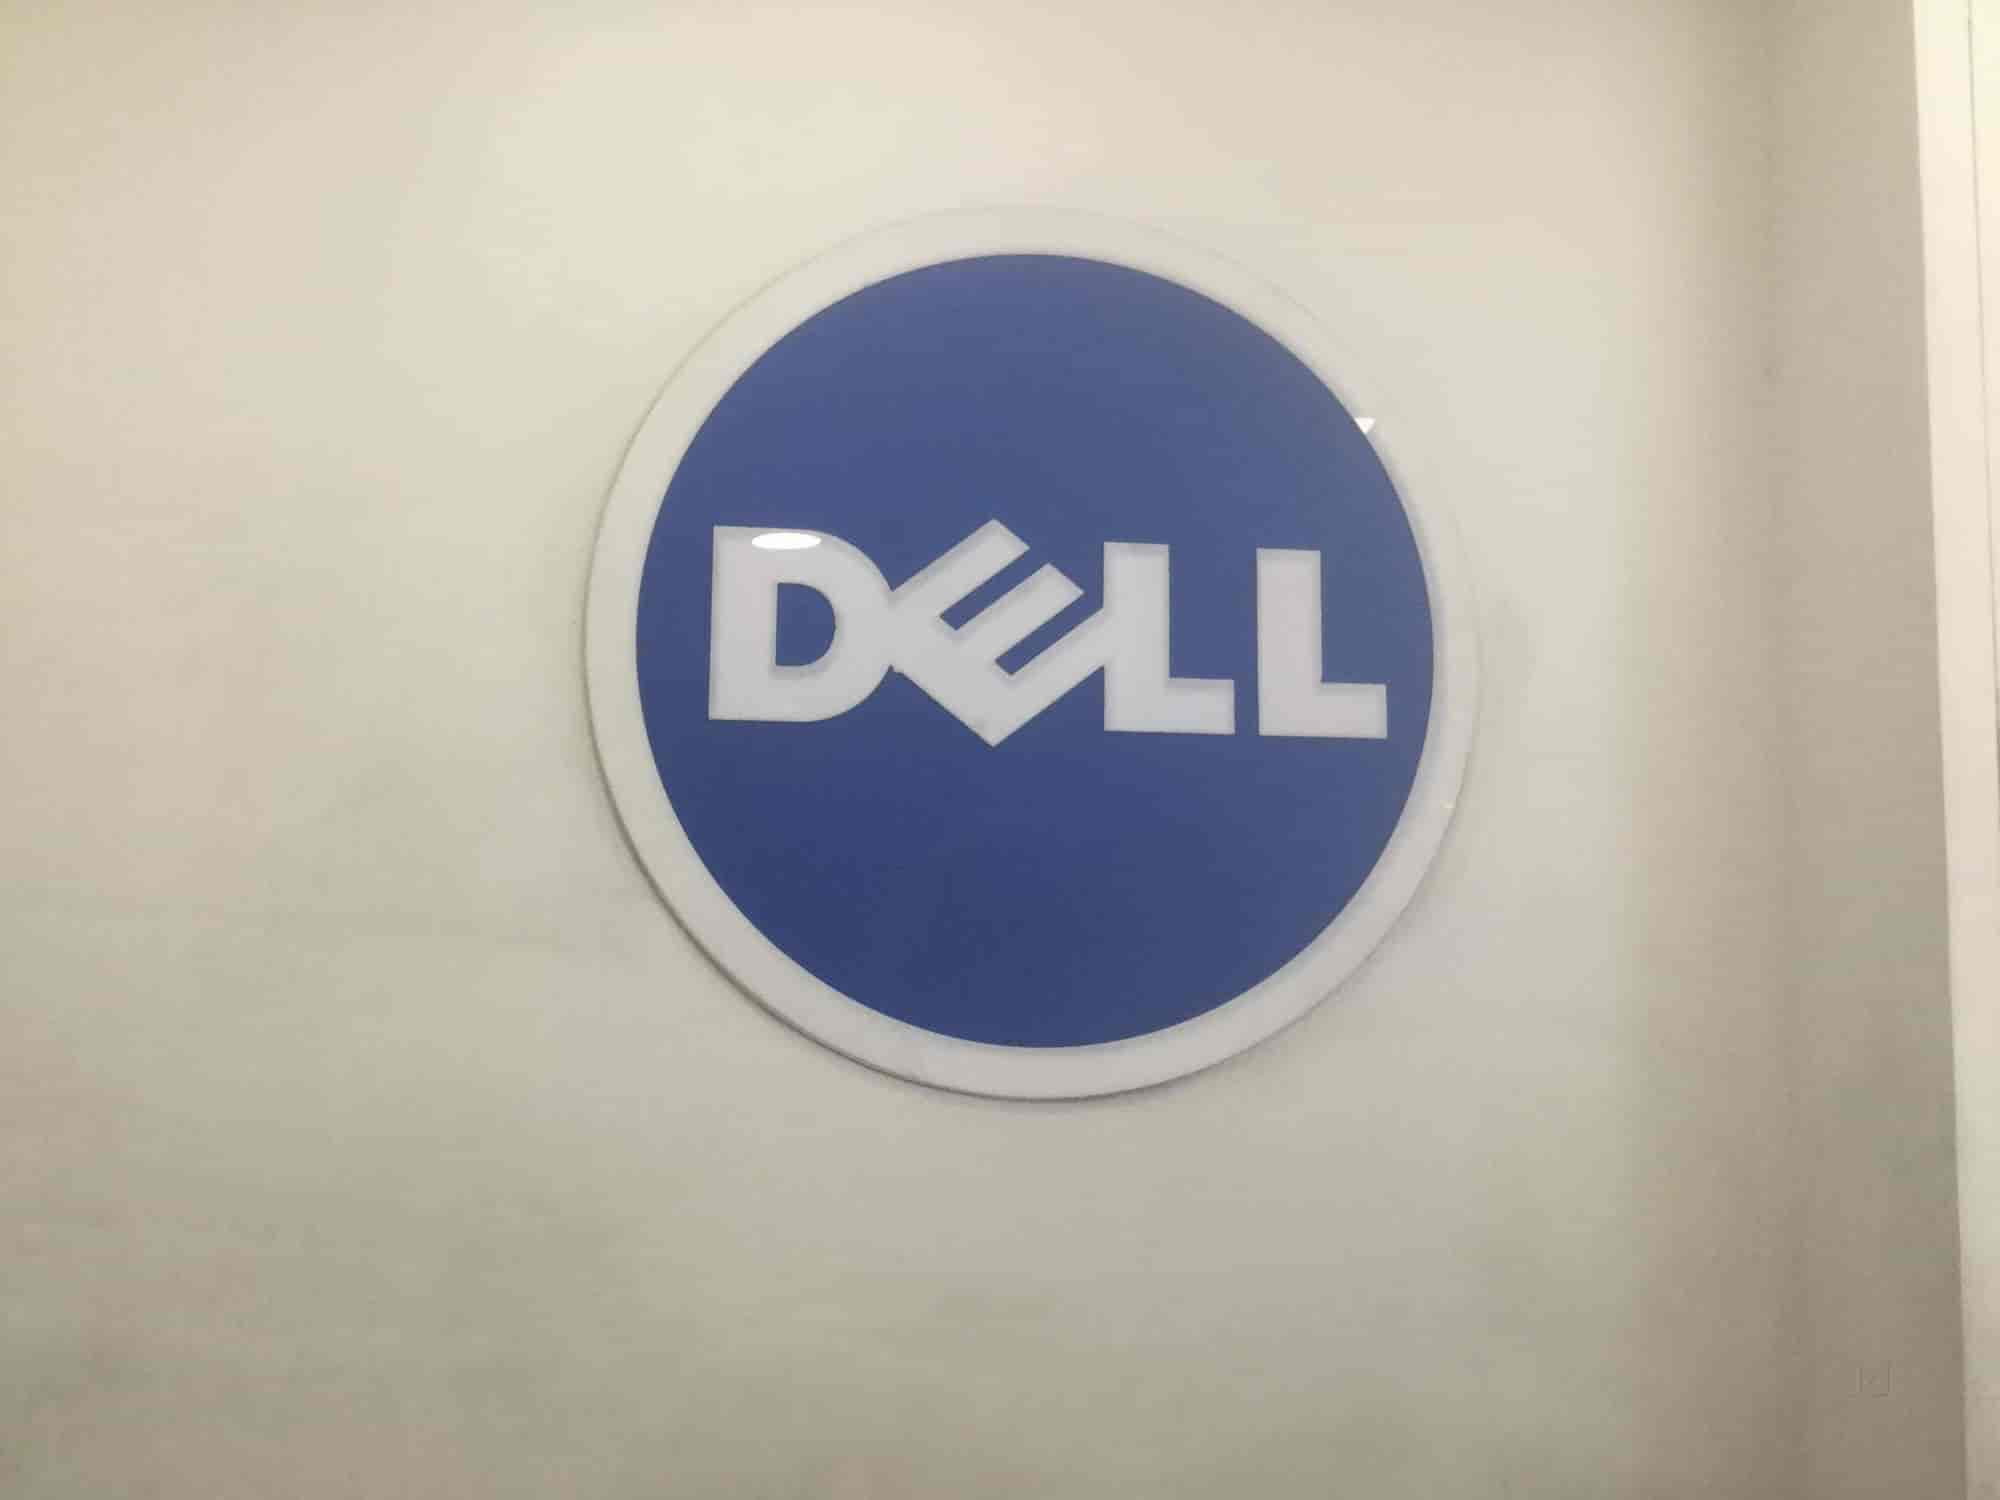 Dell exclusive store m i road mobile phone dealers in jaipur dell exclusive store m i road mobile phone dealers in jaipur justdial buycottarizona